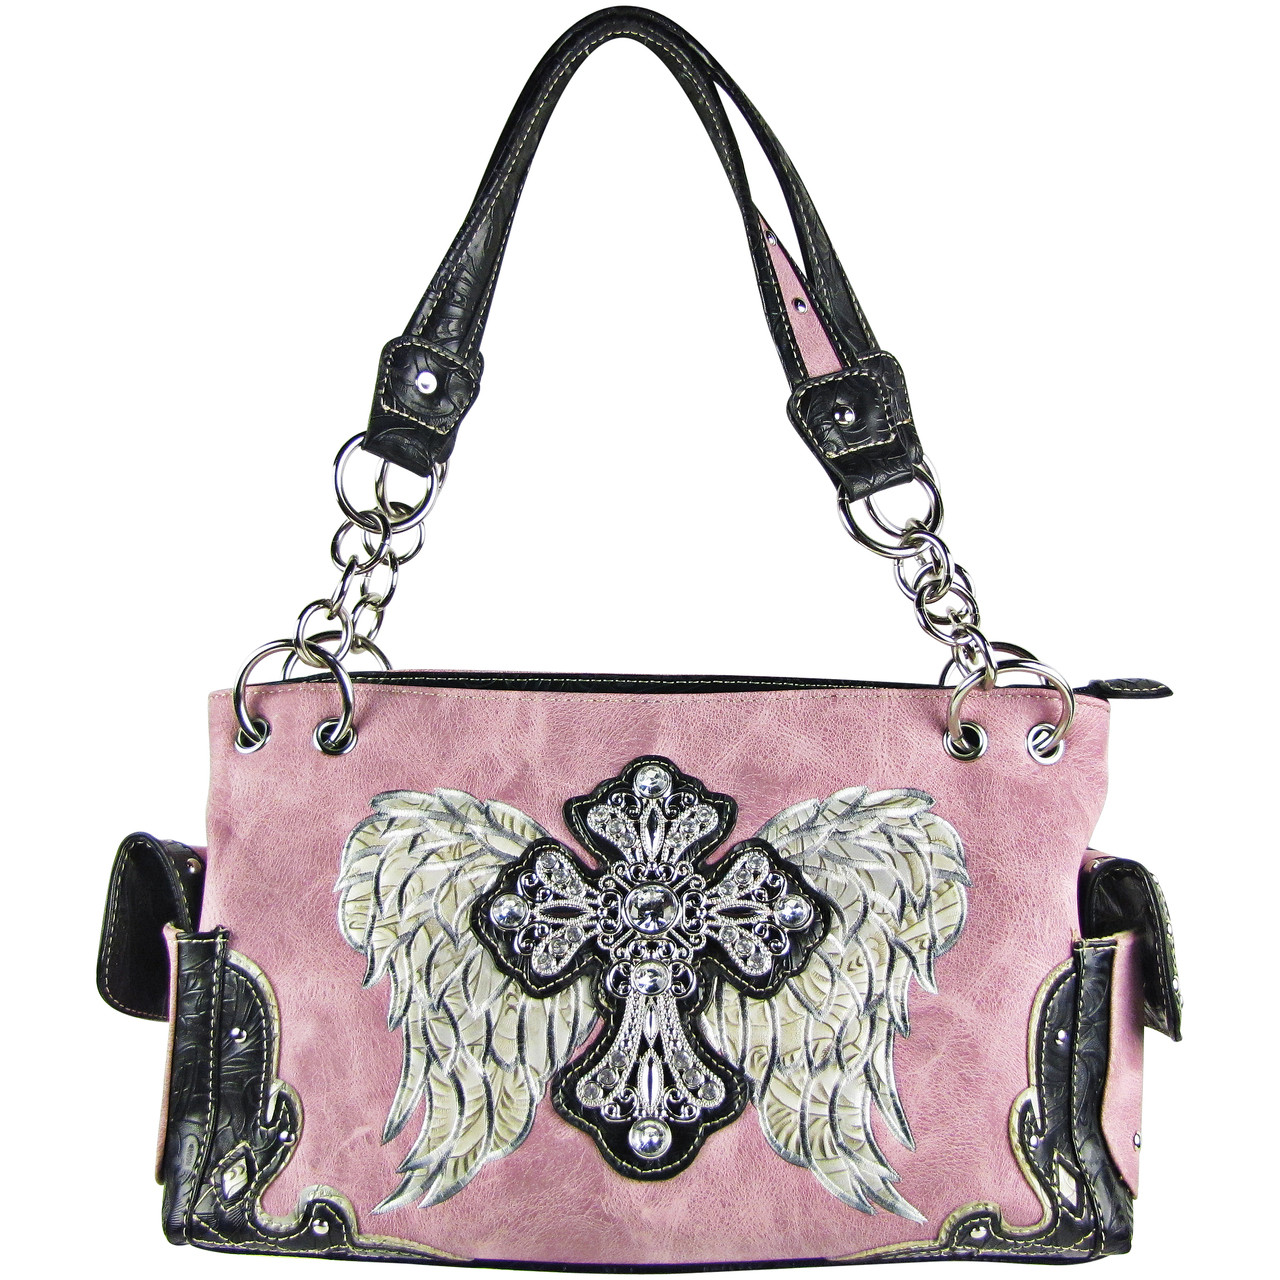 PINK RHINESTONE CROSS WITH WINGS LOOK SHOULDER HANDBAG HB1-61LCRPNK